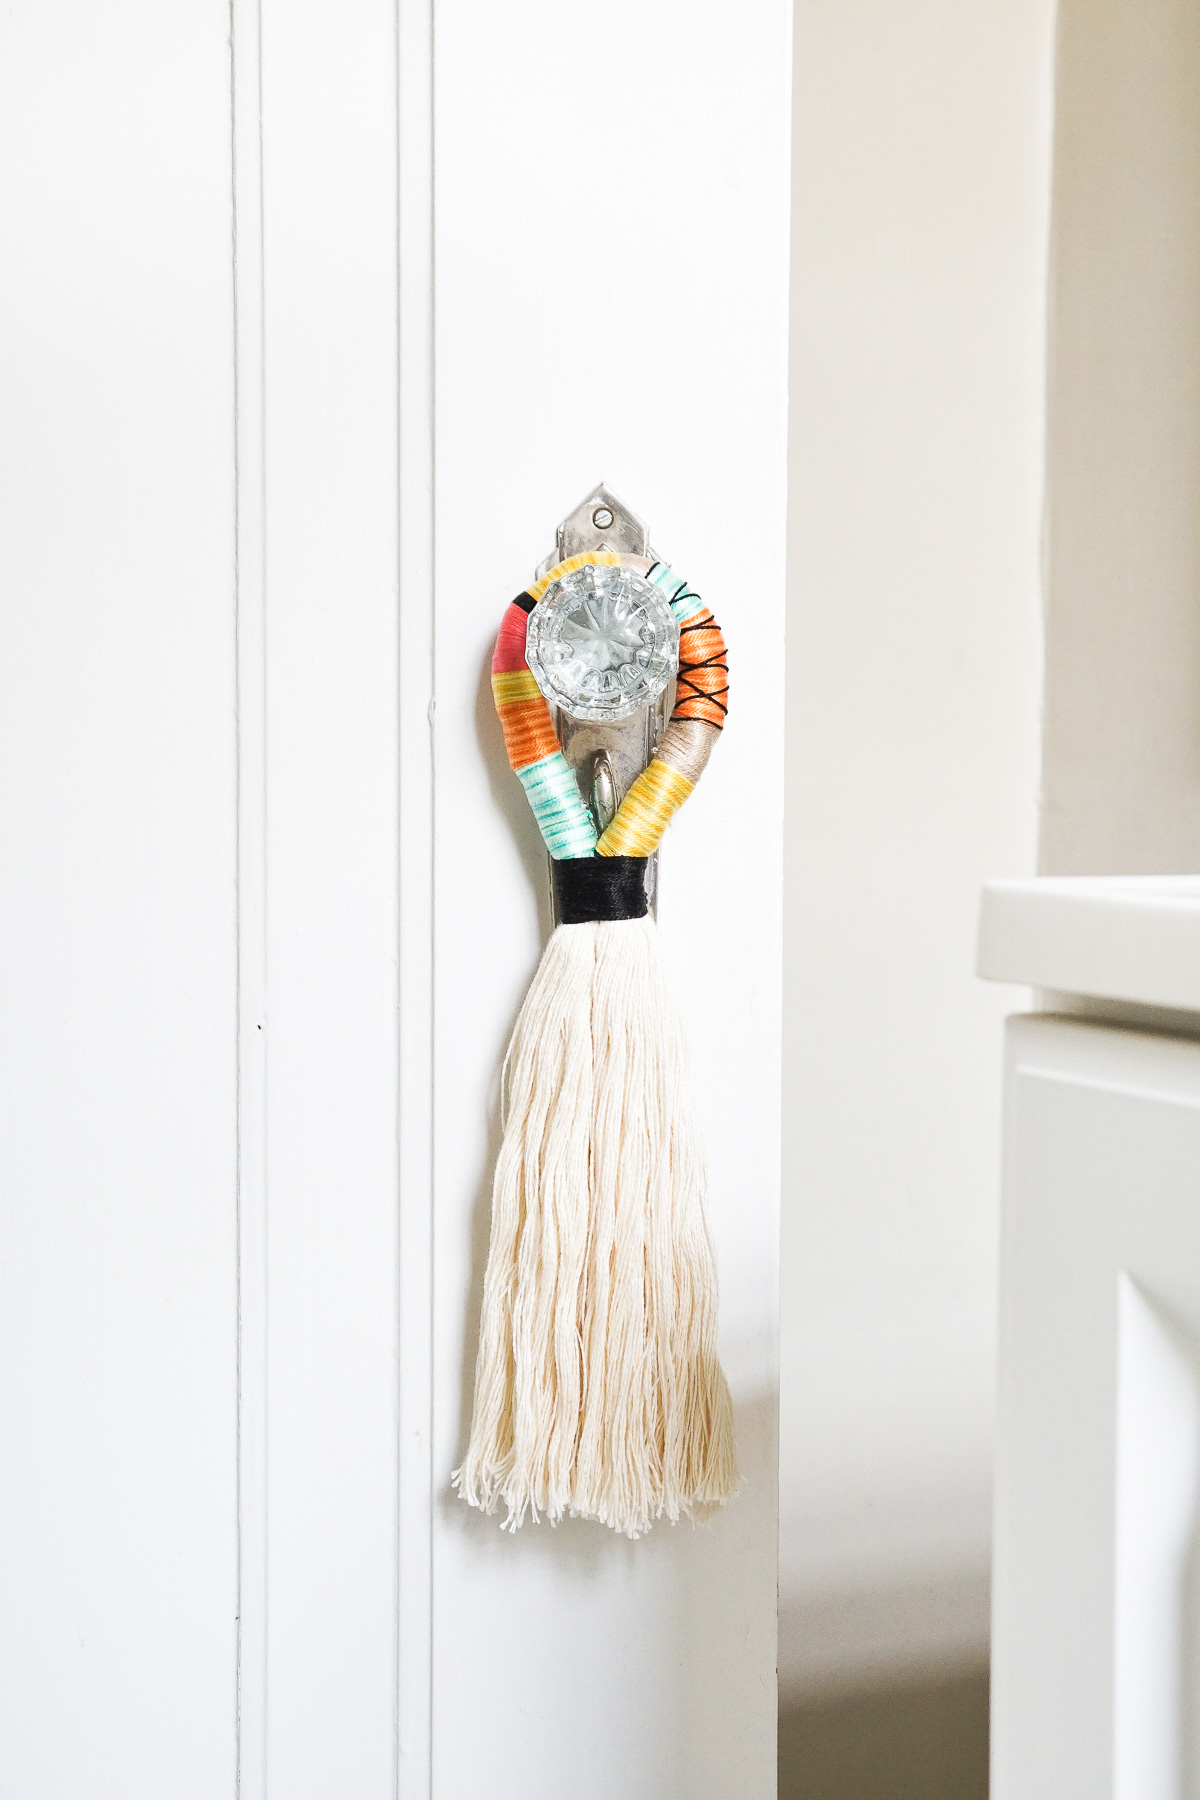 Home Design Trends: Chic Door Knob Tassels. DIY Door Handle Rope Tassels. Click through for the details. | glitterinc.com | @glitterinc